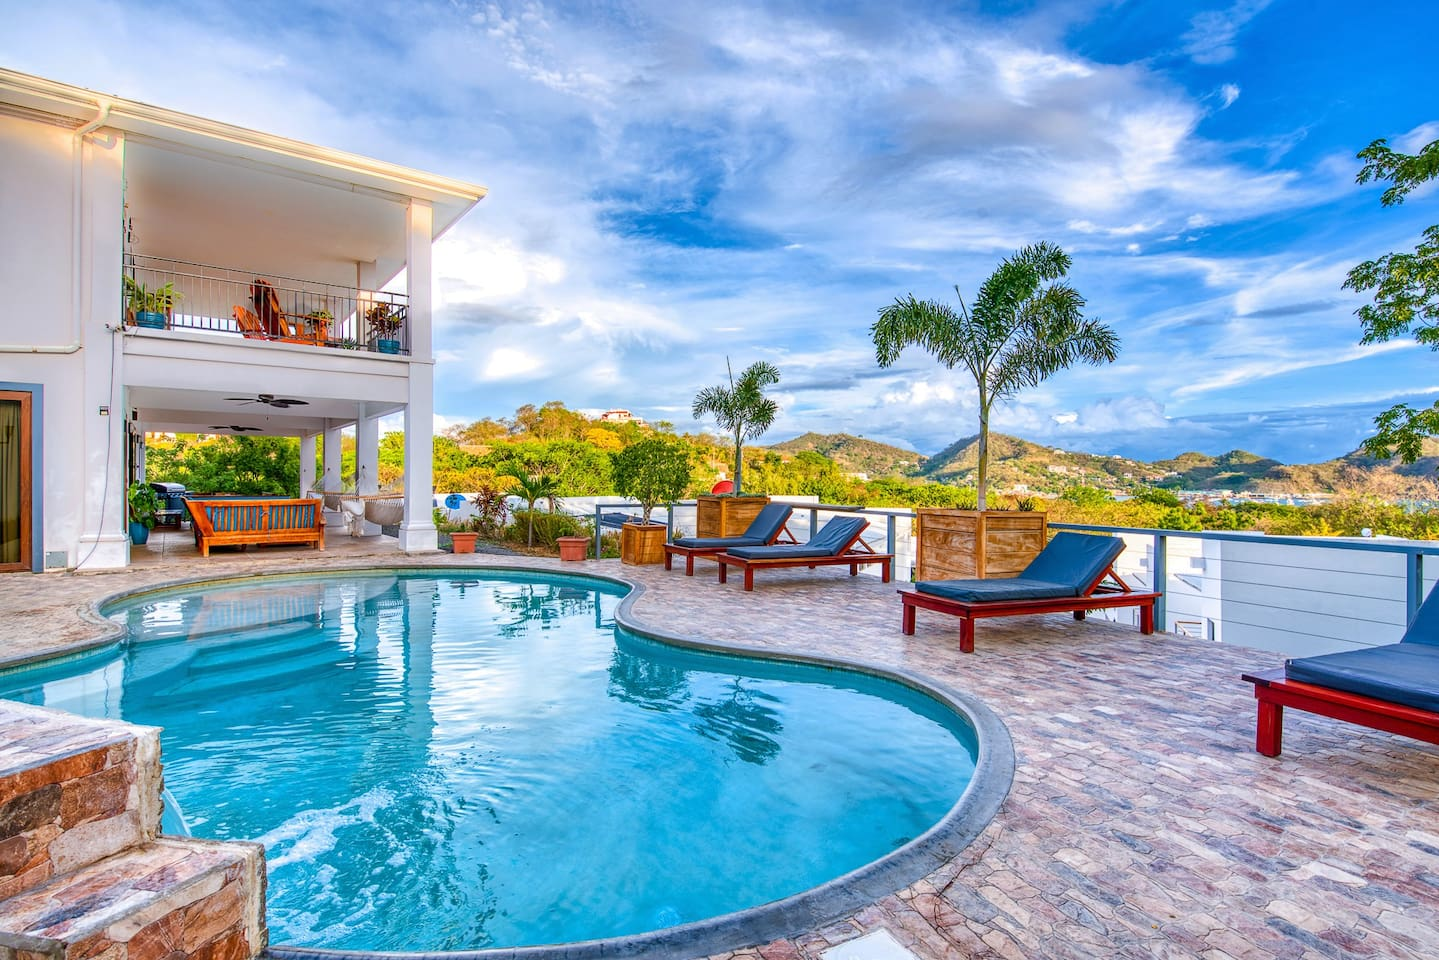 Casa Soma (house) with the pool and beach view